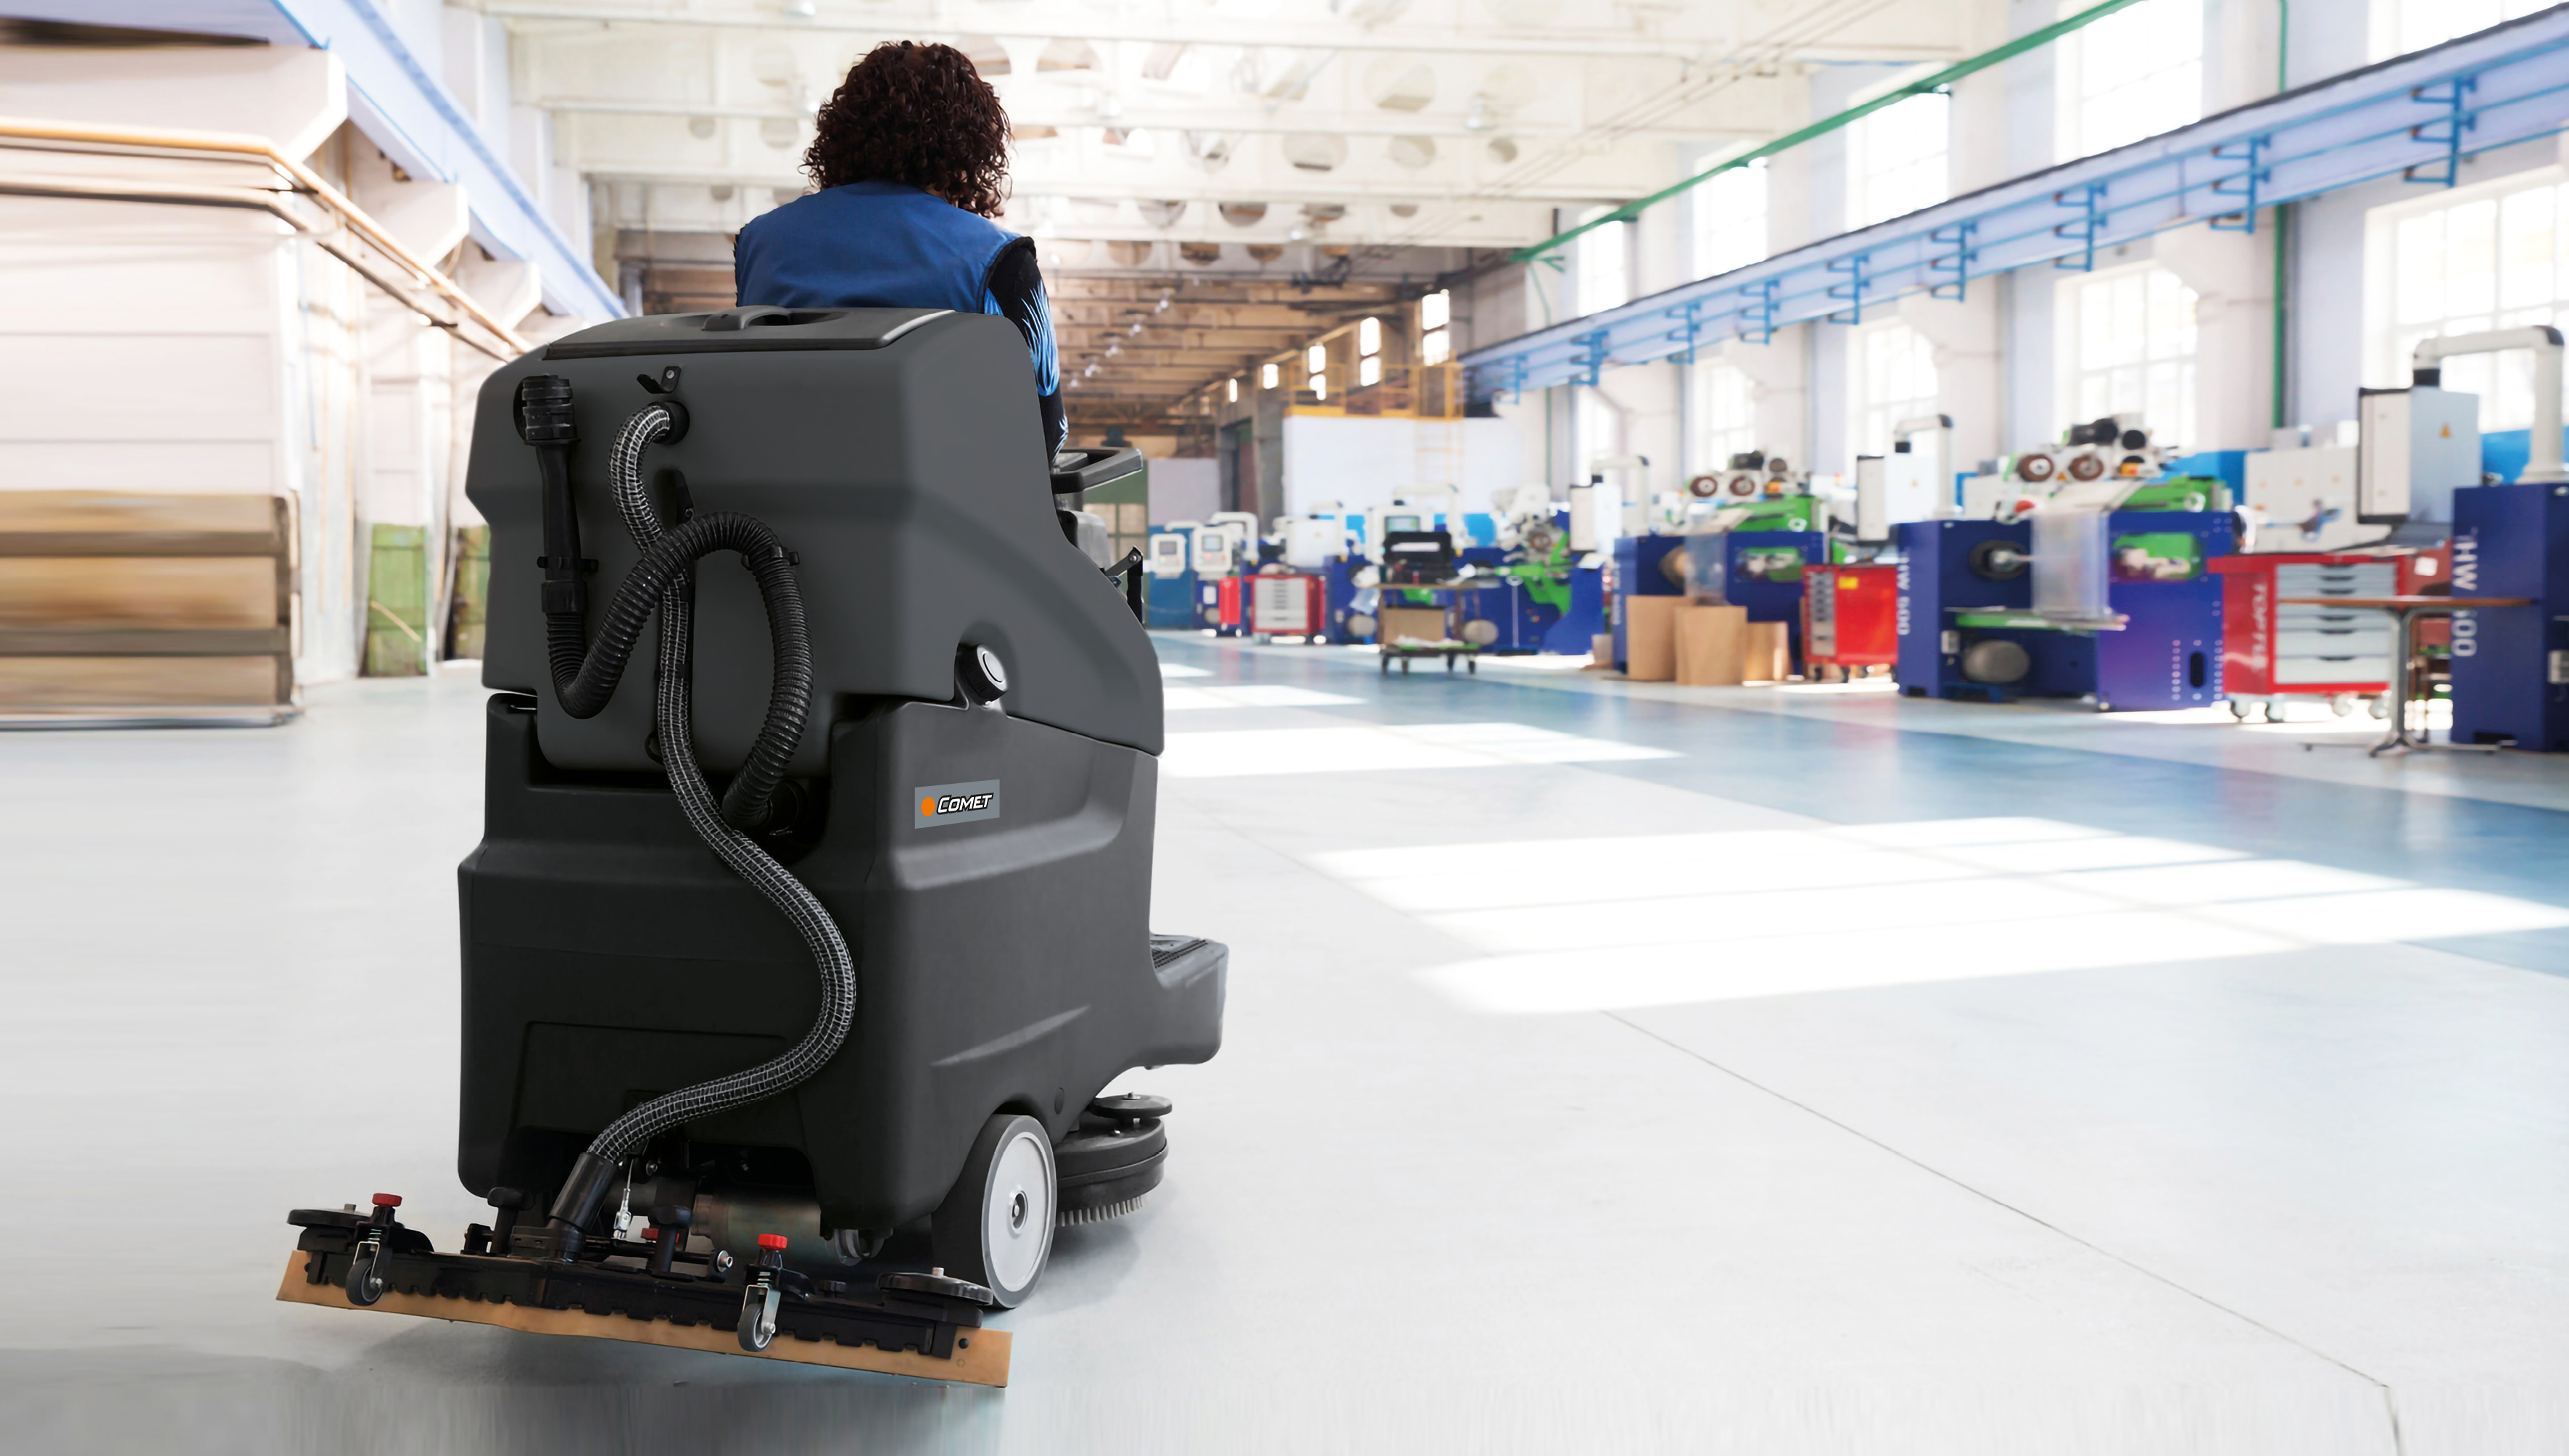 HOW TO ENSURE THE HYGIENE OF FLOORS WITH A SCRUBBER DRYER